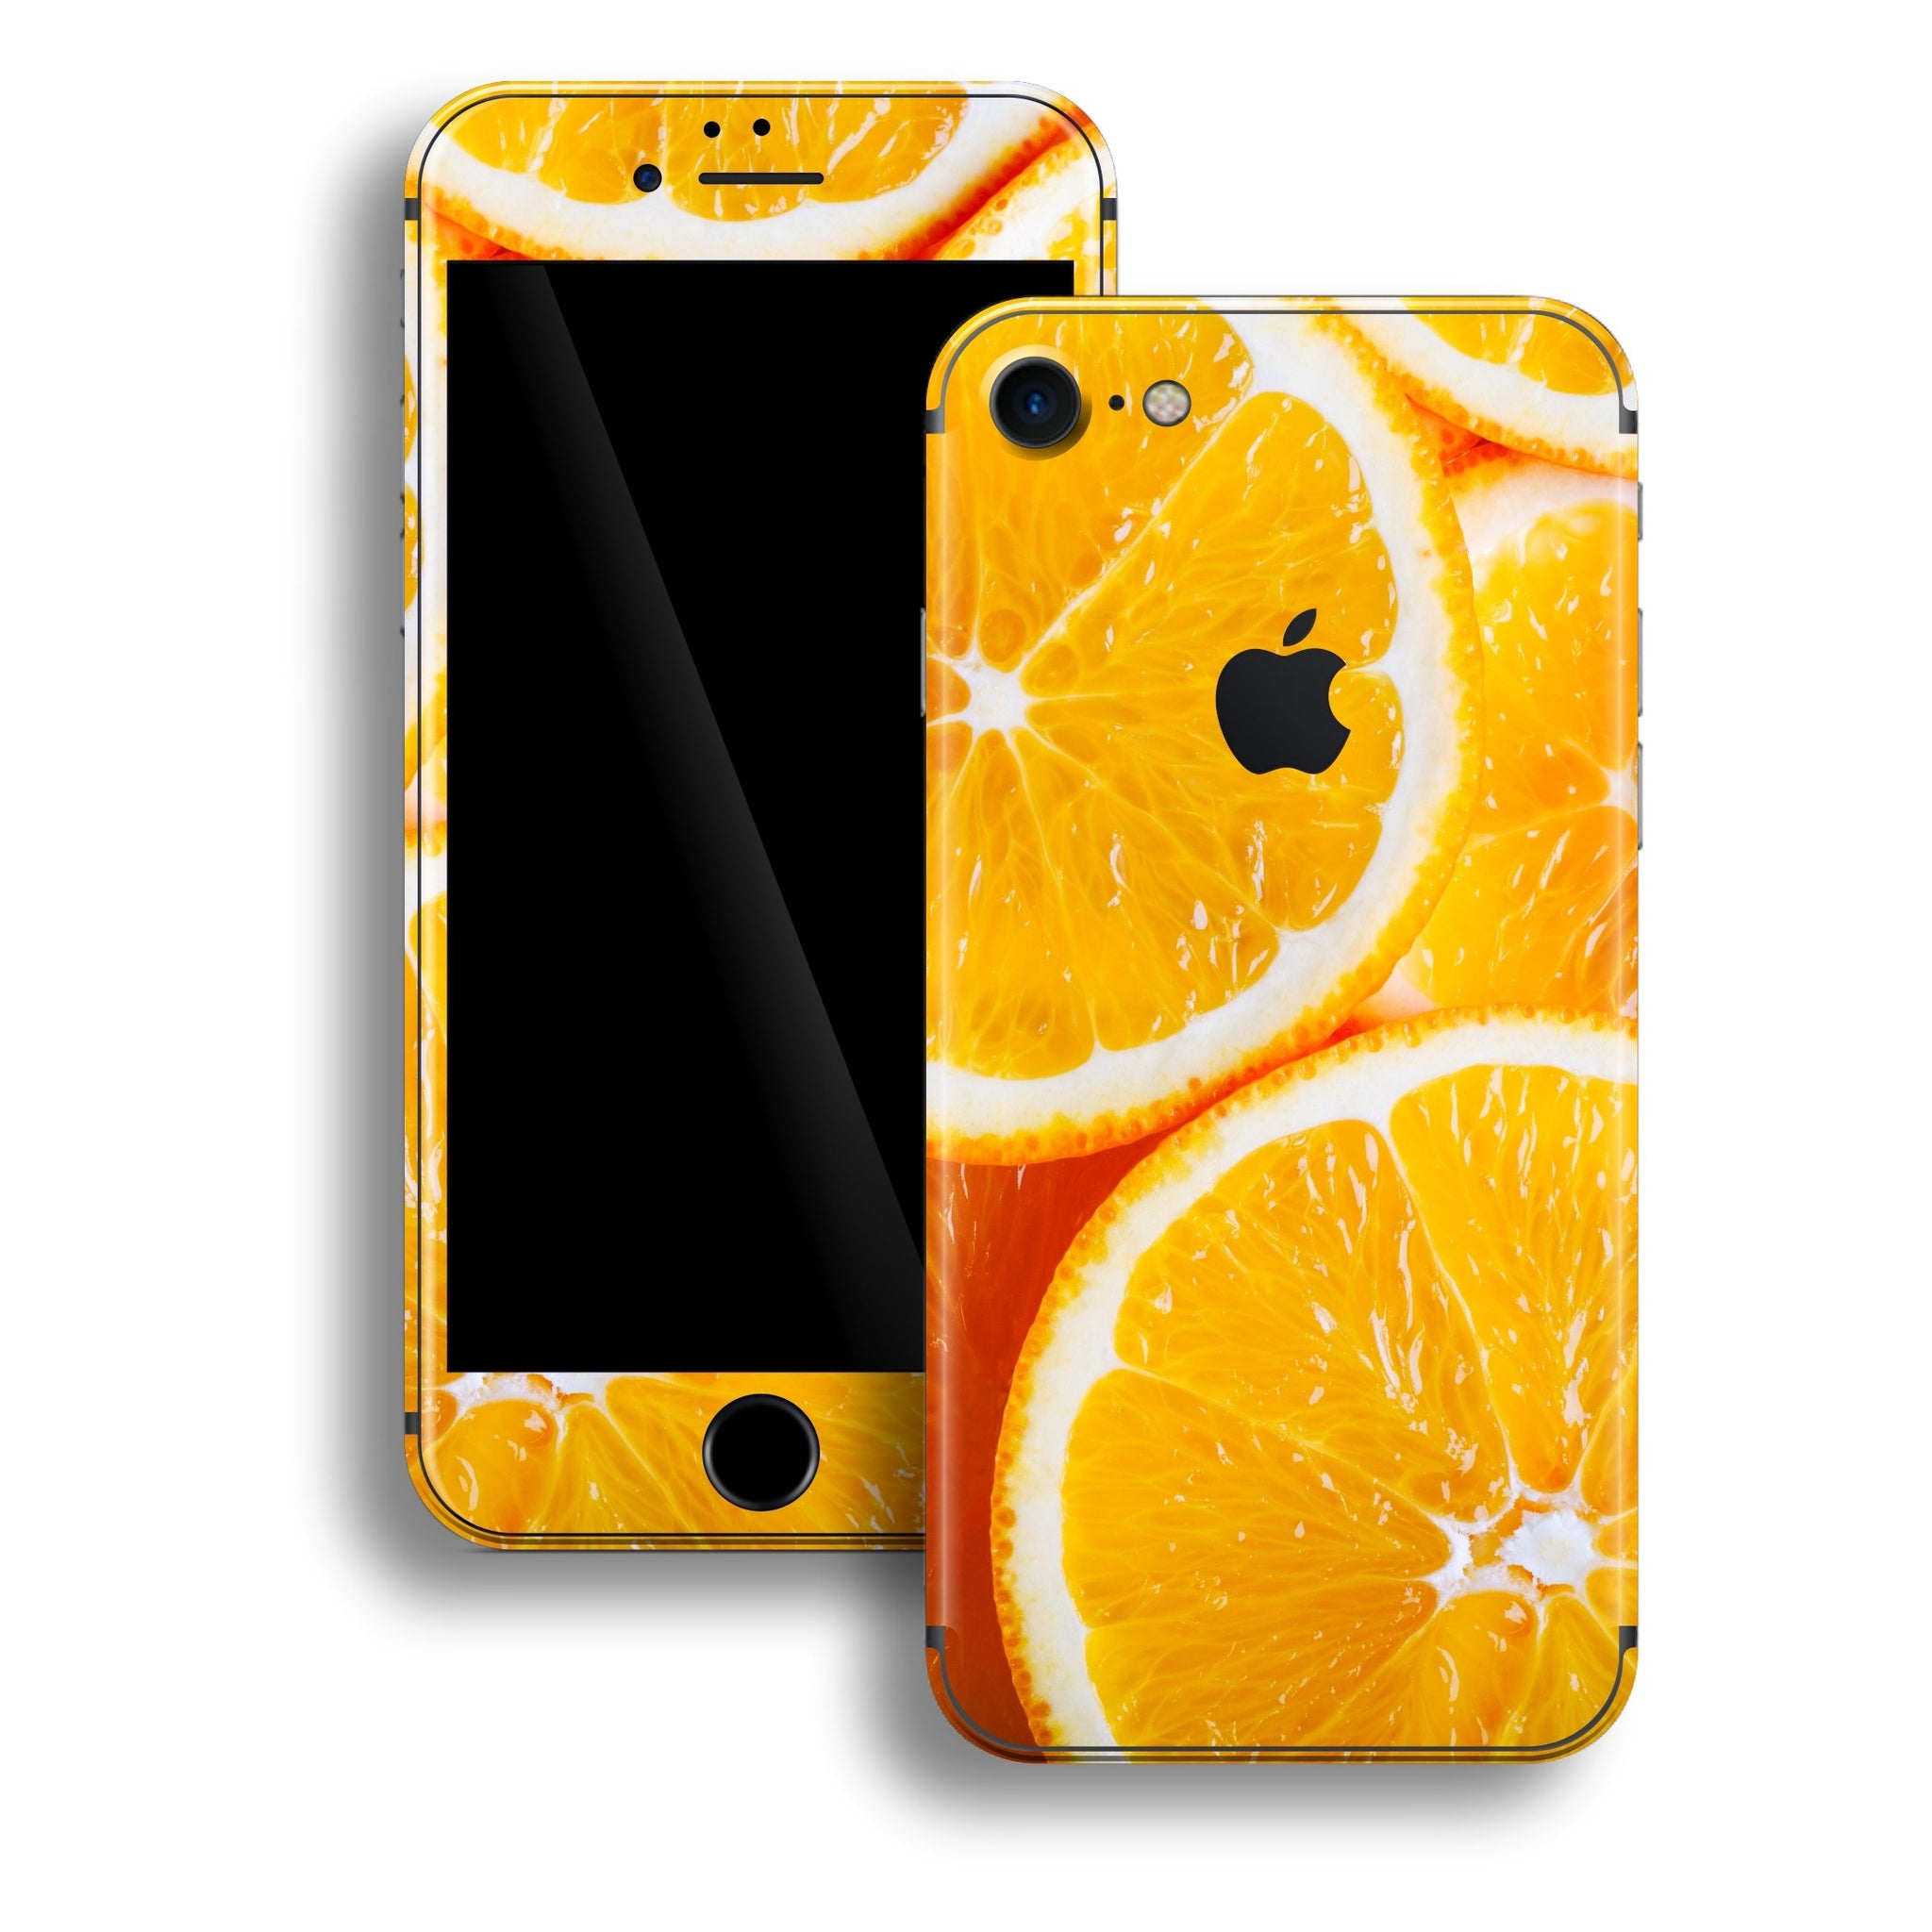 iPhone 8 Print Custom Signature Orange Skin Wrap Decal by EasySkinz